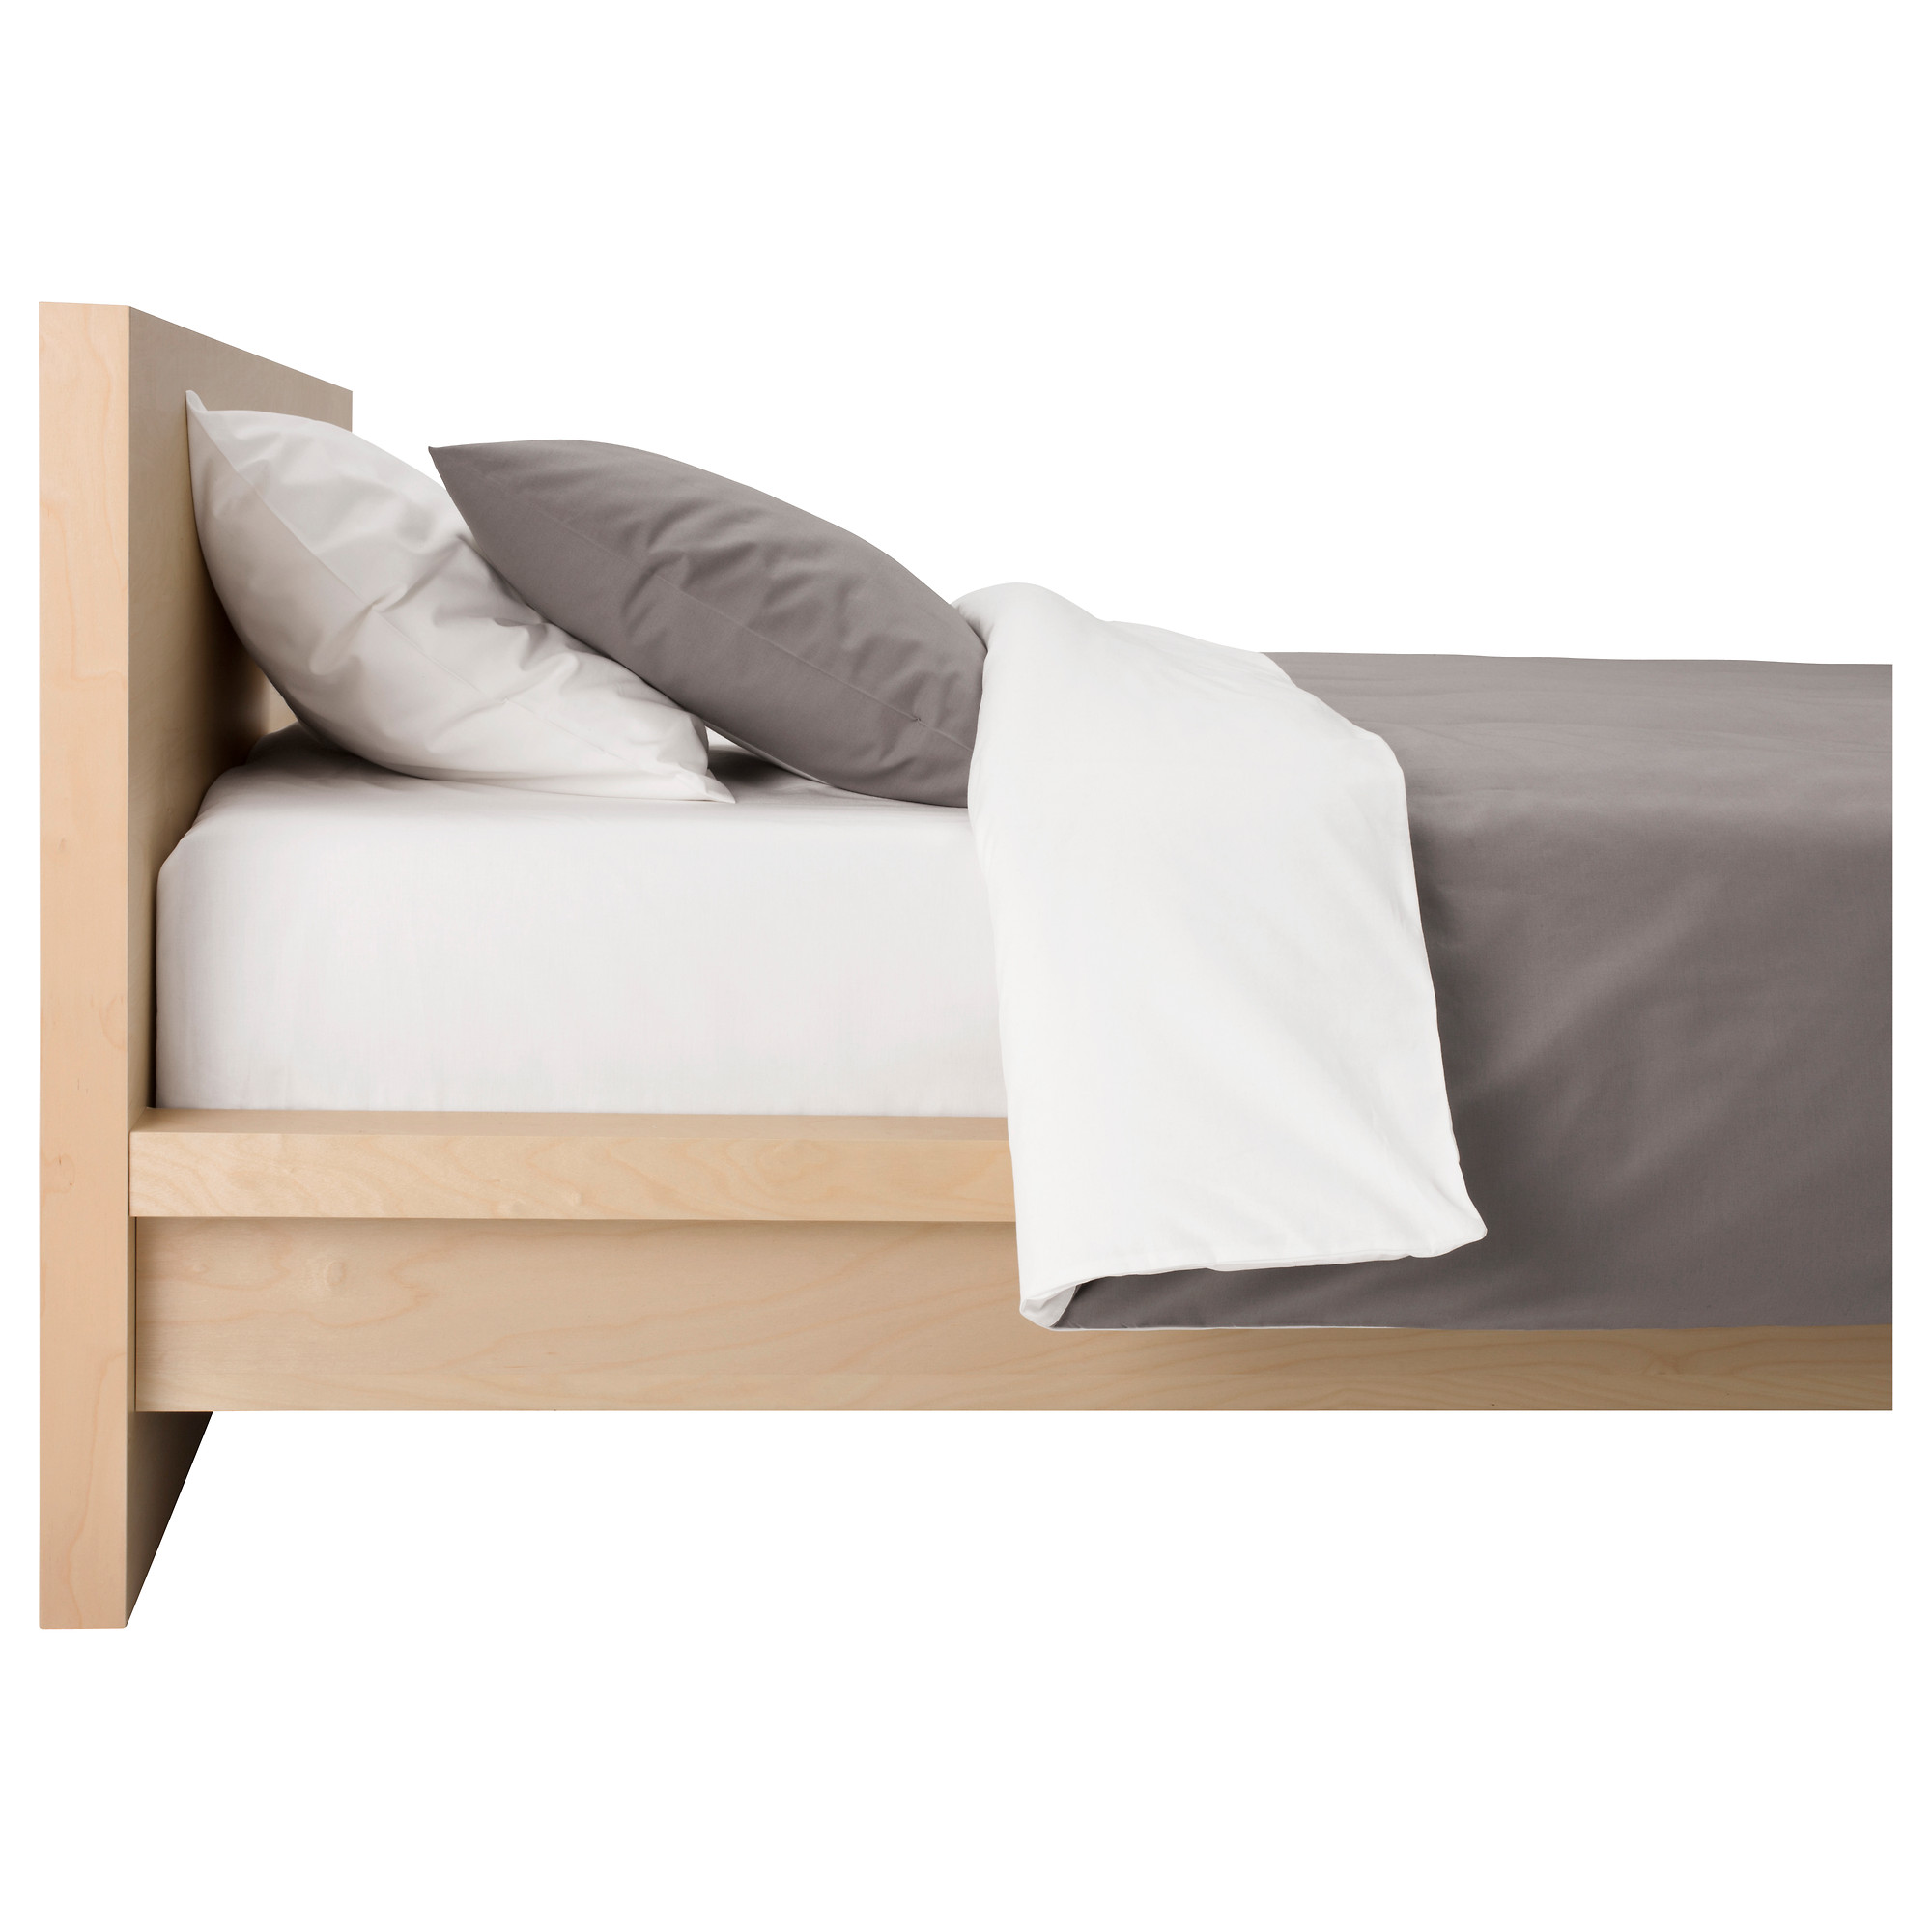 Awesome ikea king platform bed homesfeed for Ikea malm bed low